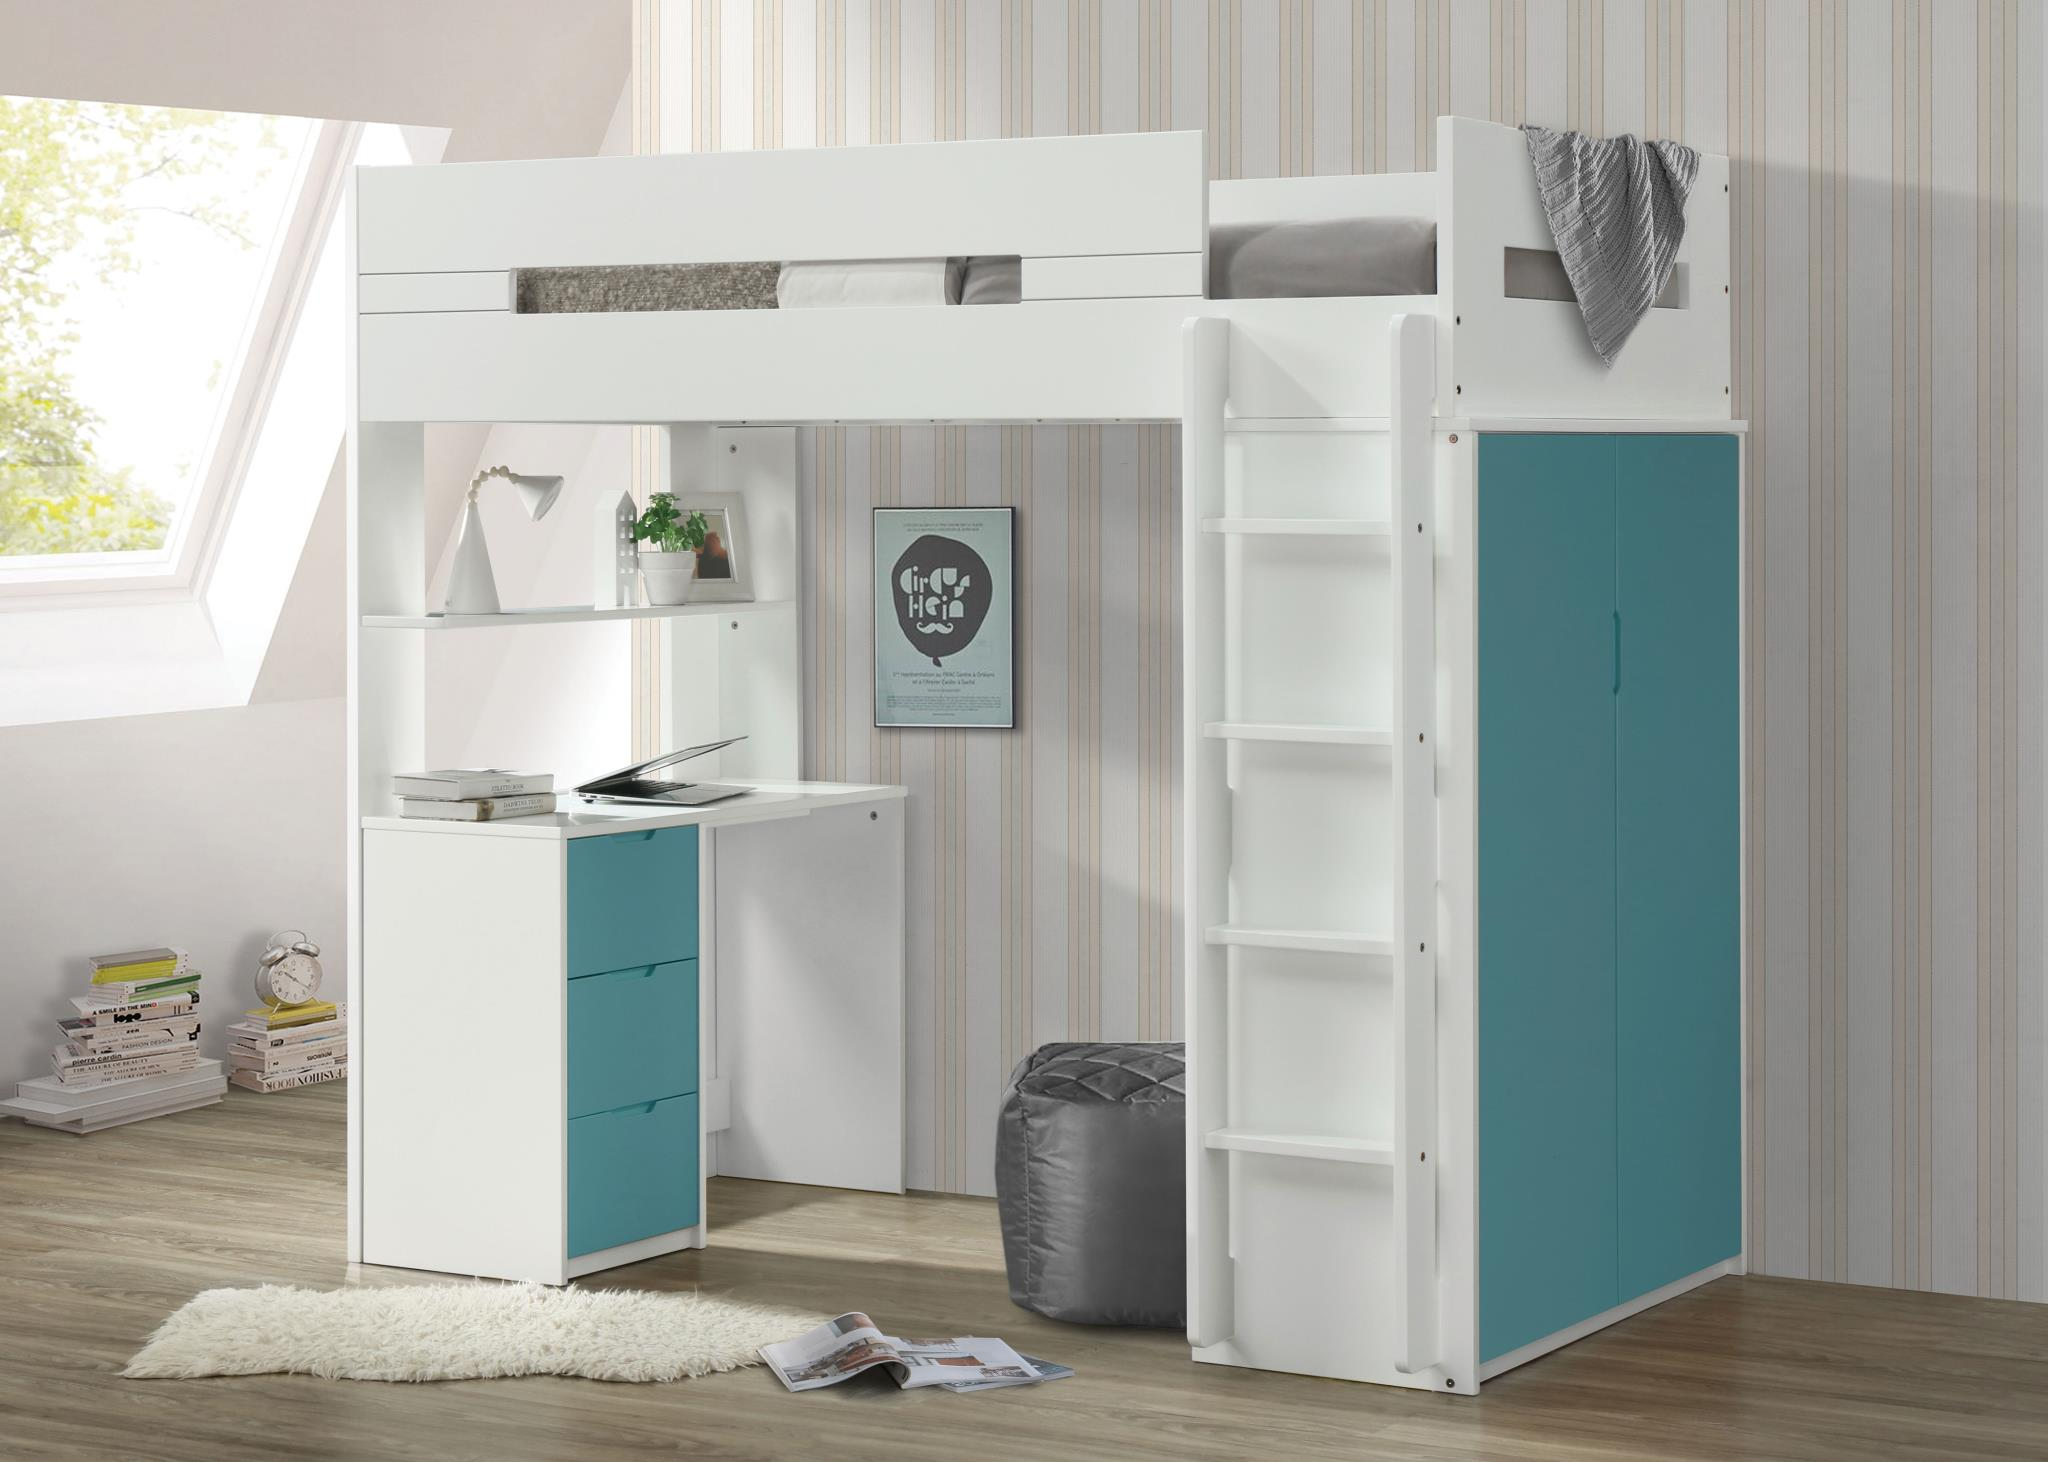 Teal & White Loft Bed